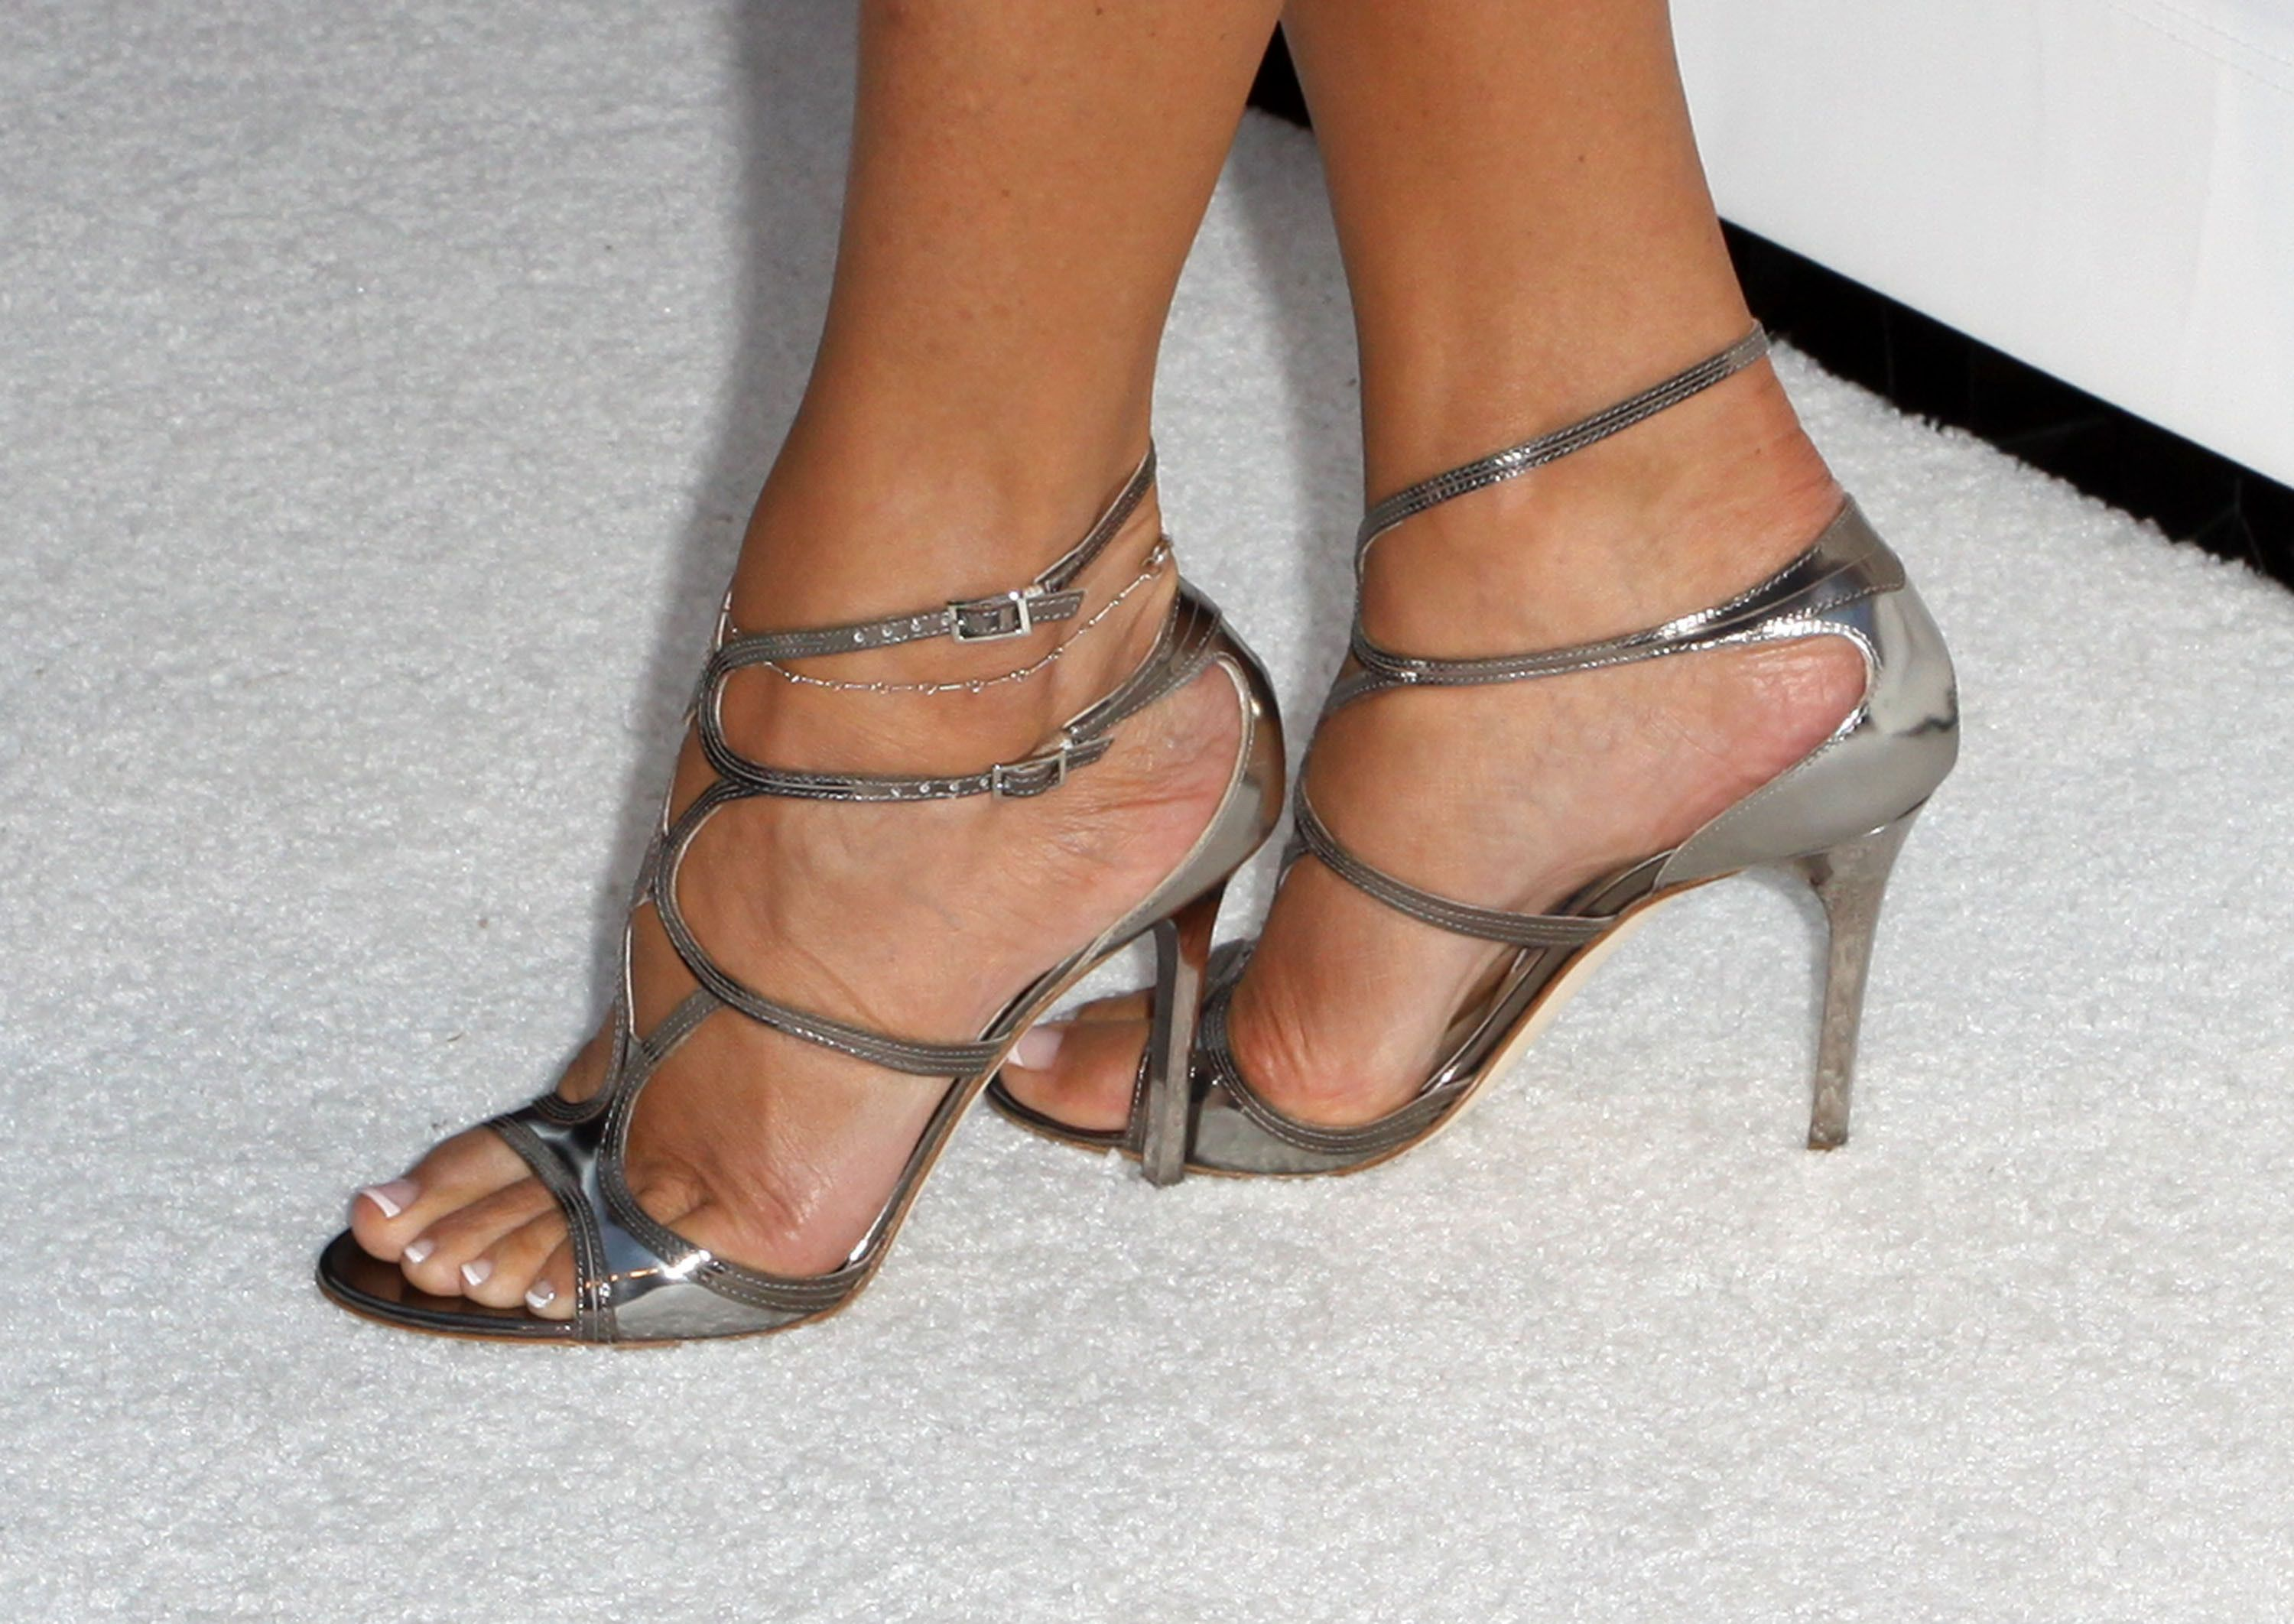 nancy o dell feet